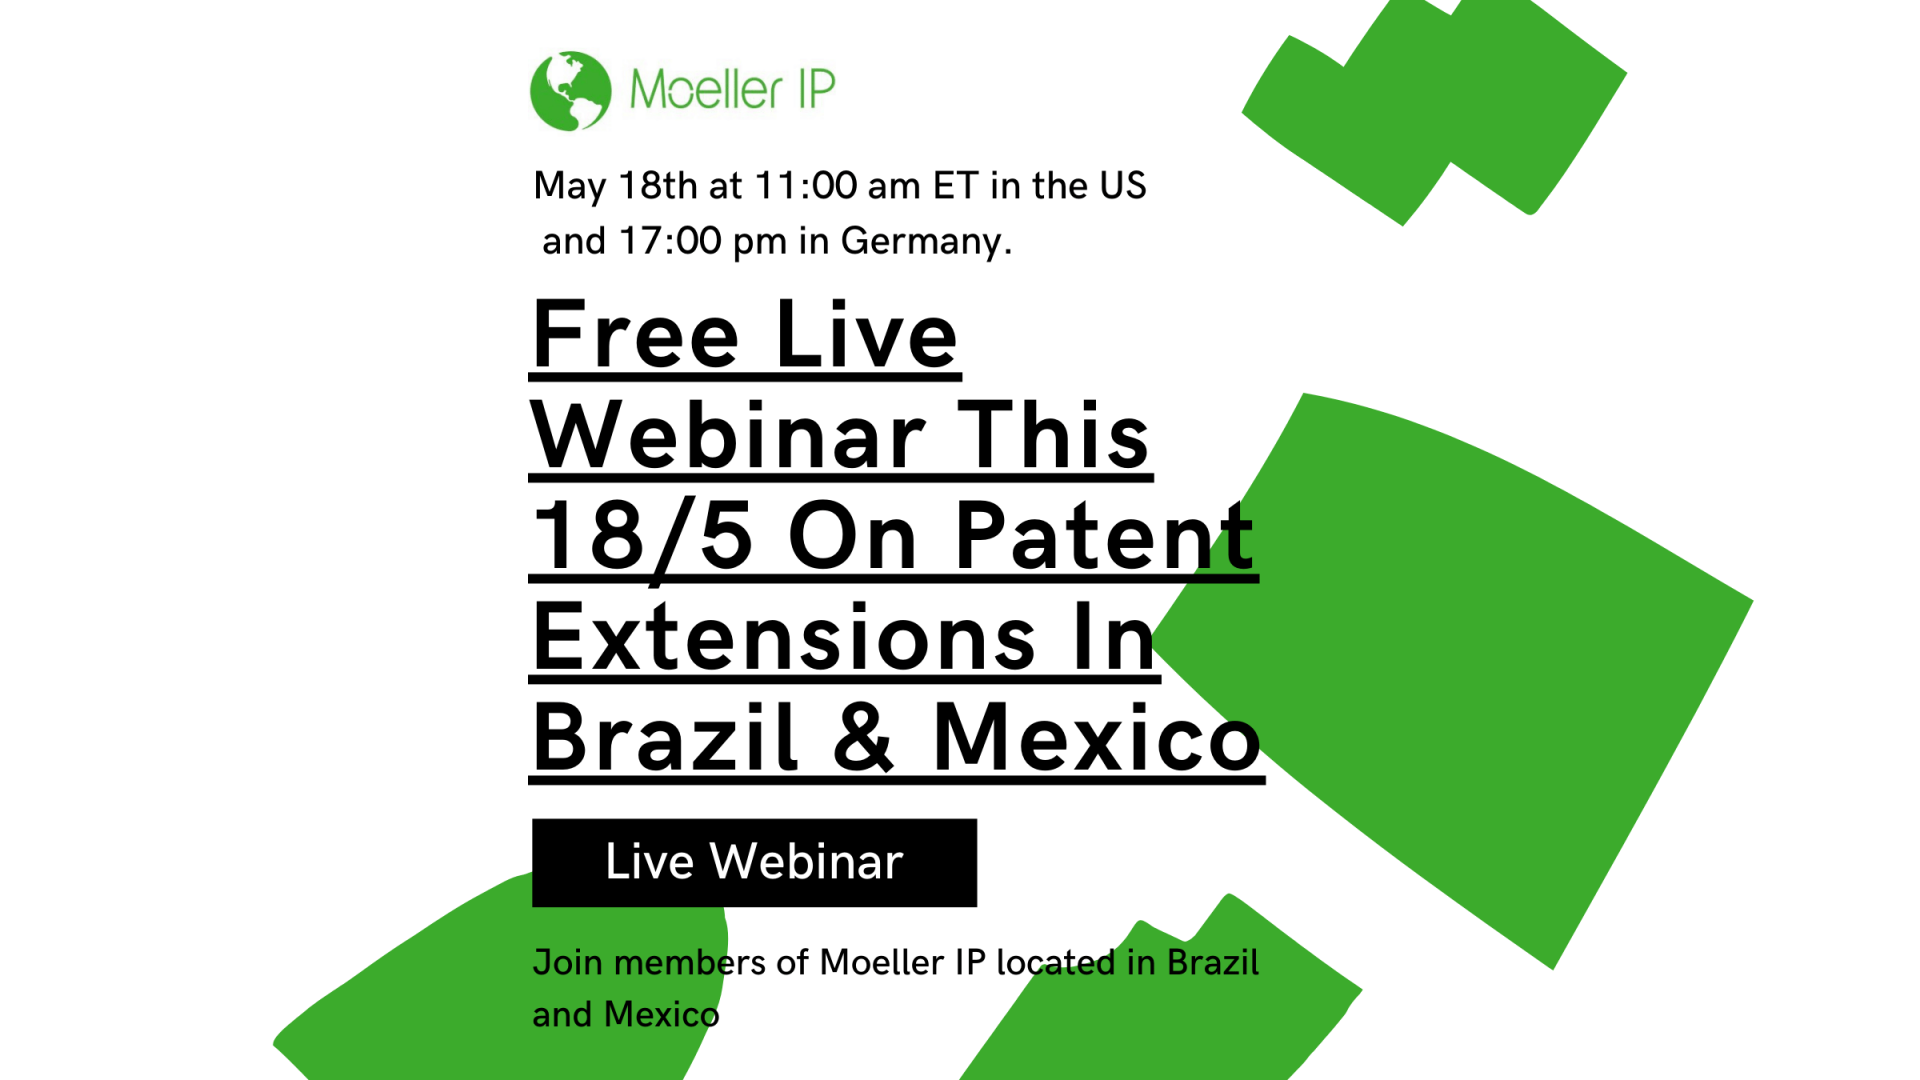 FREE LIVE WEBINAR THIS 18/5 ON PATENT EXTENSIONS IN BRAZIL & MEXICO